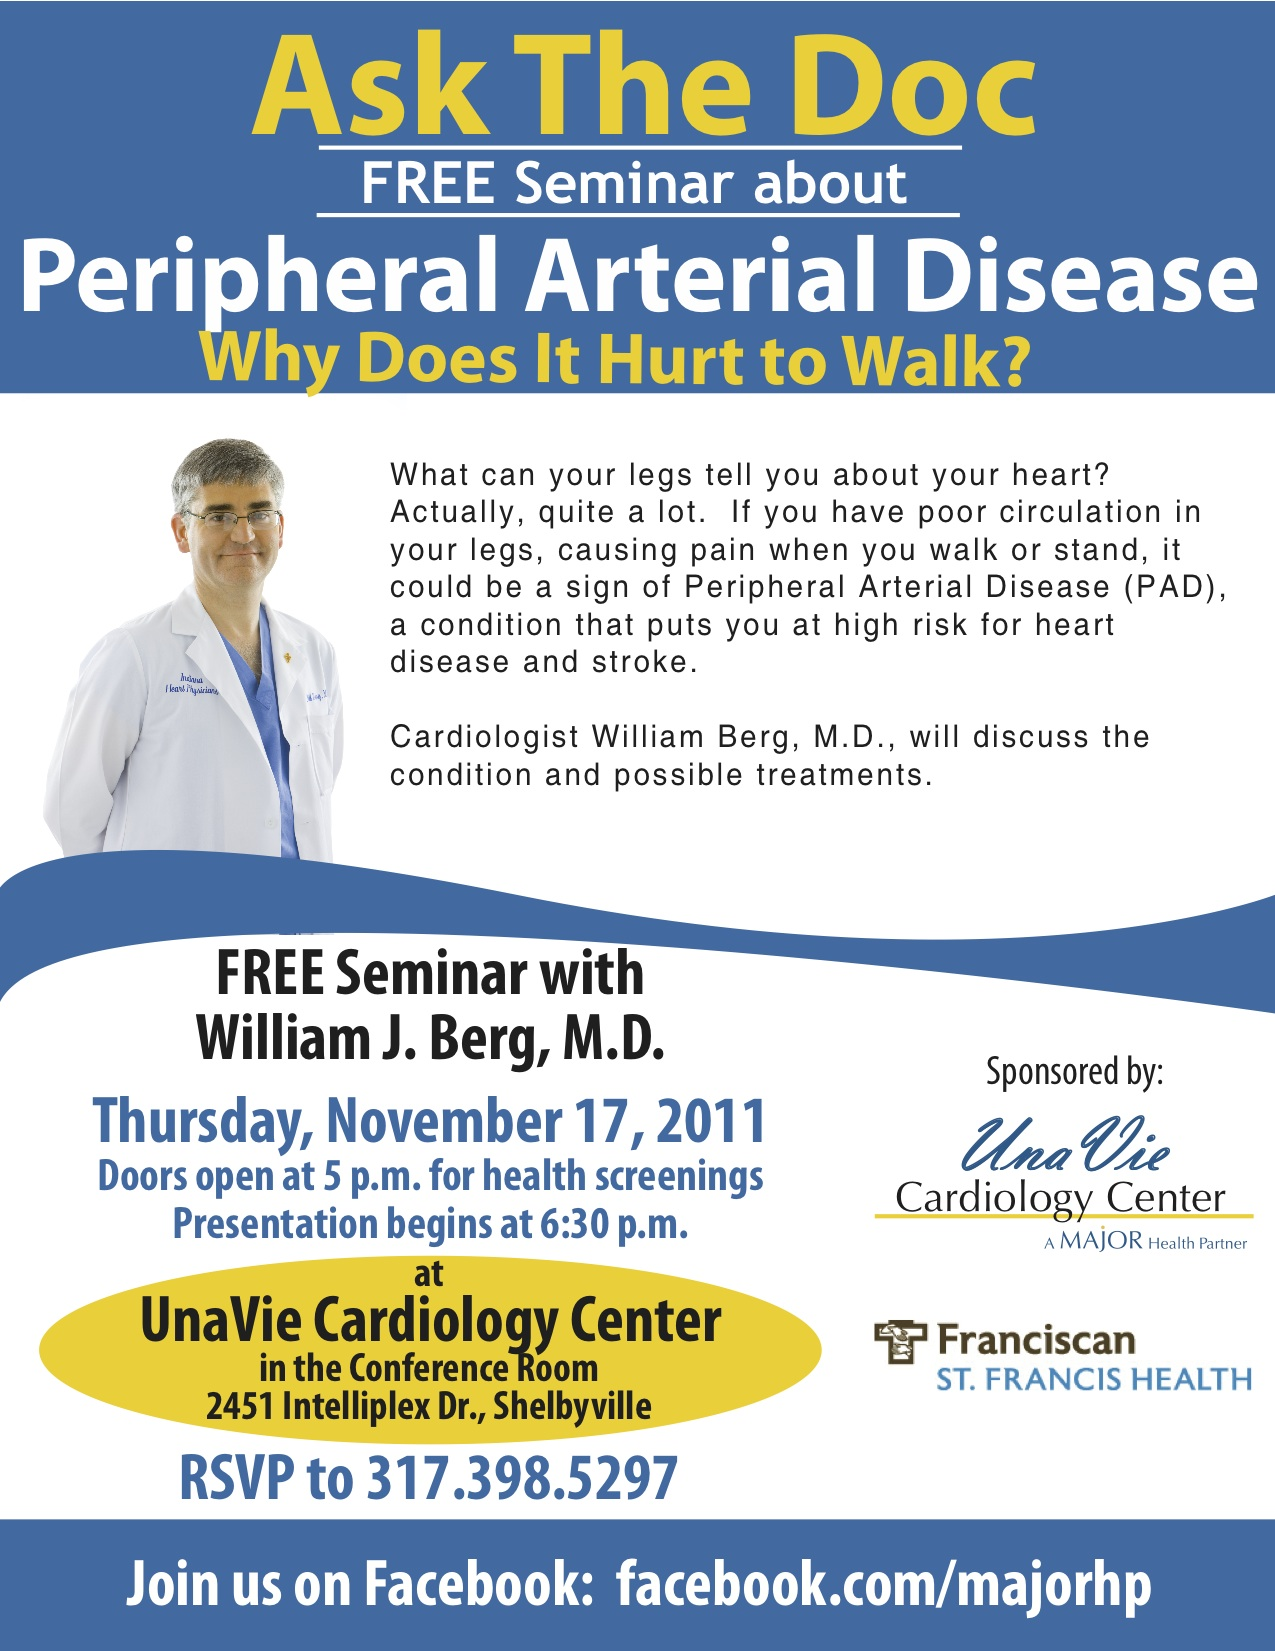 Ask the doc flier 11-11 Dr. Berg